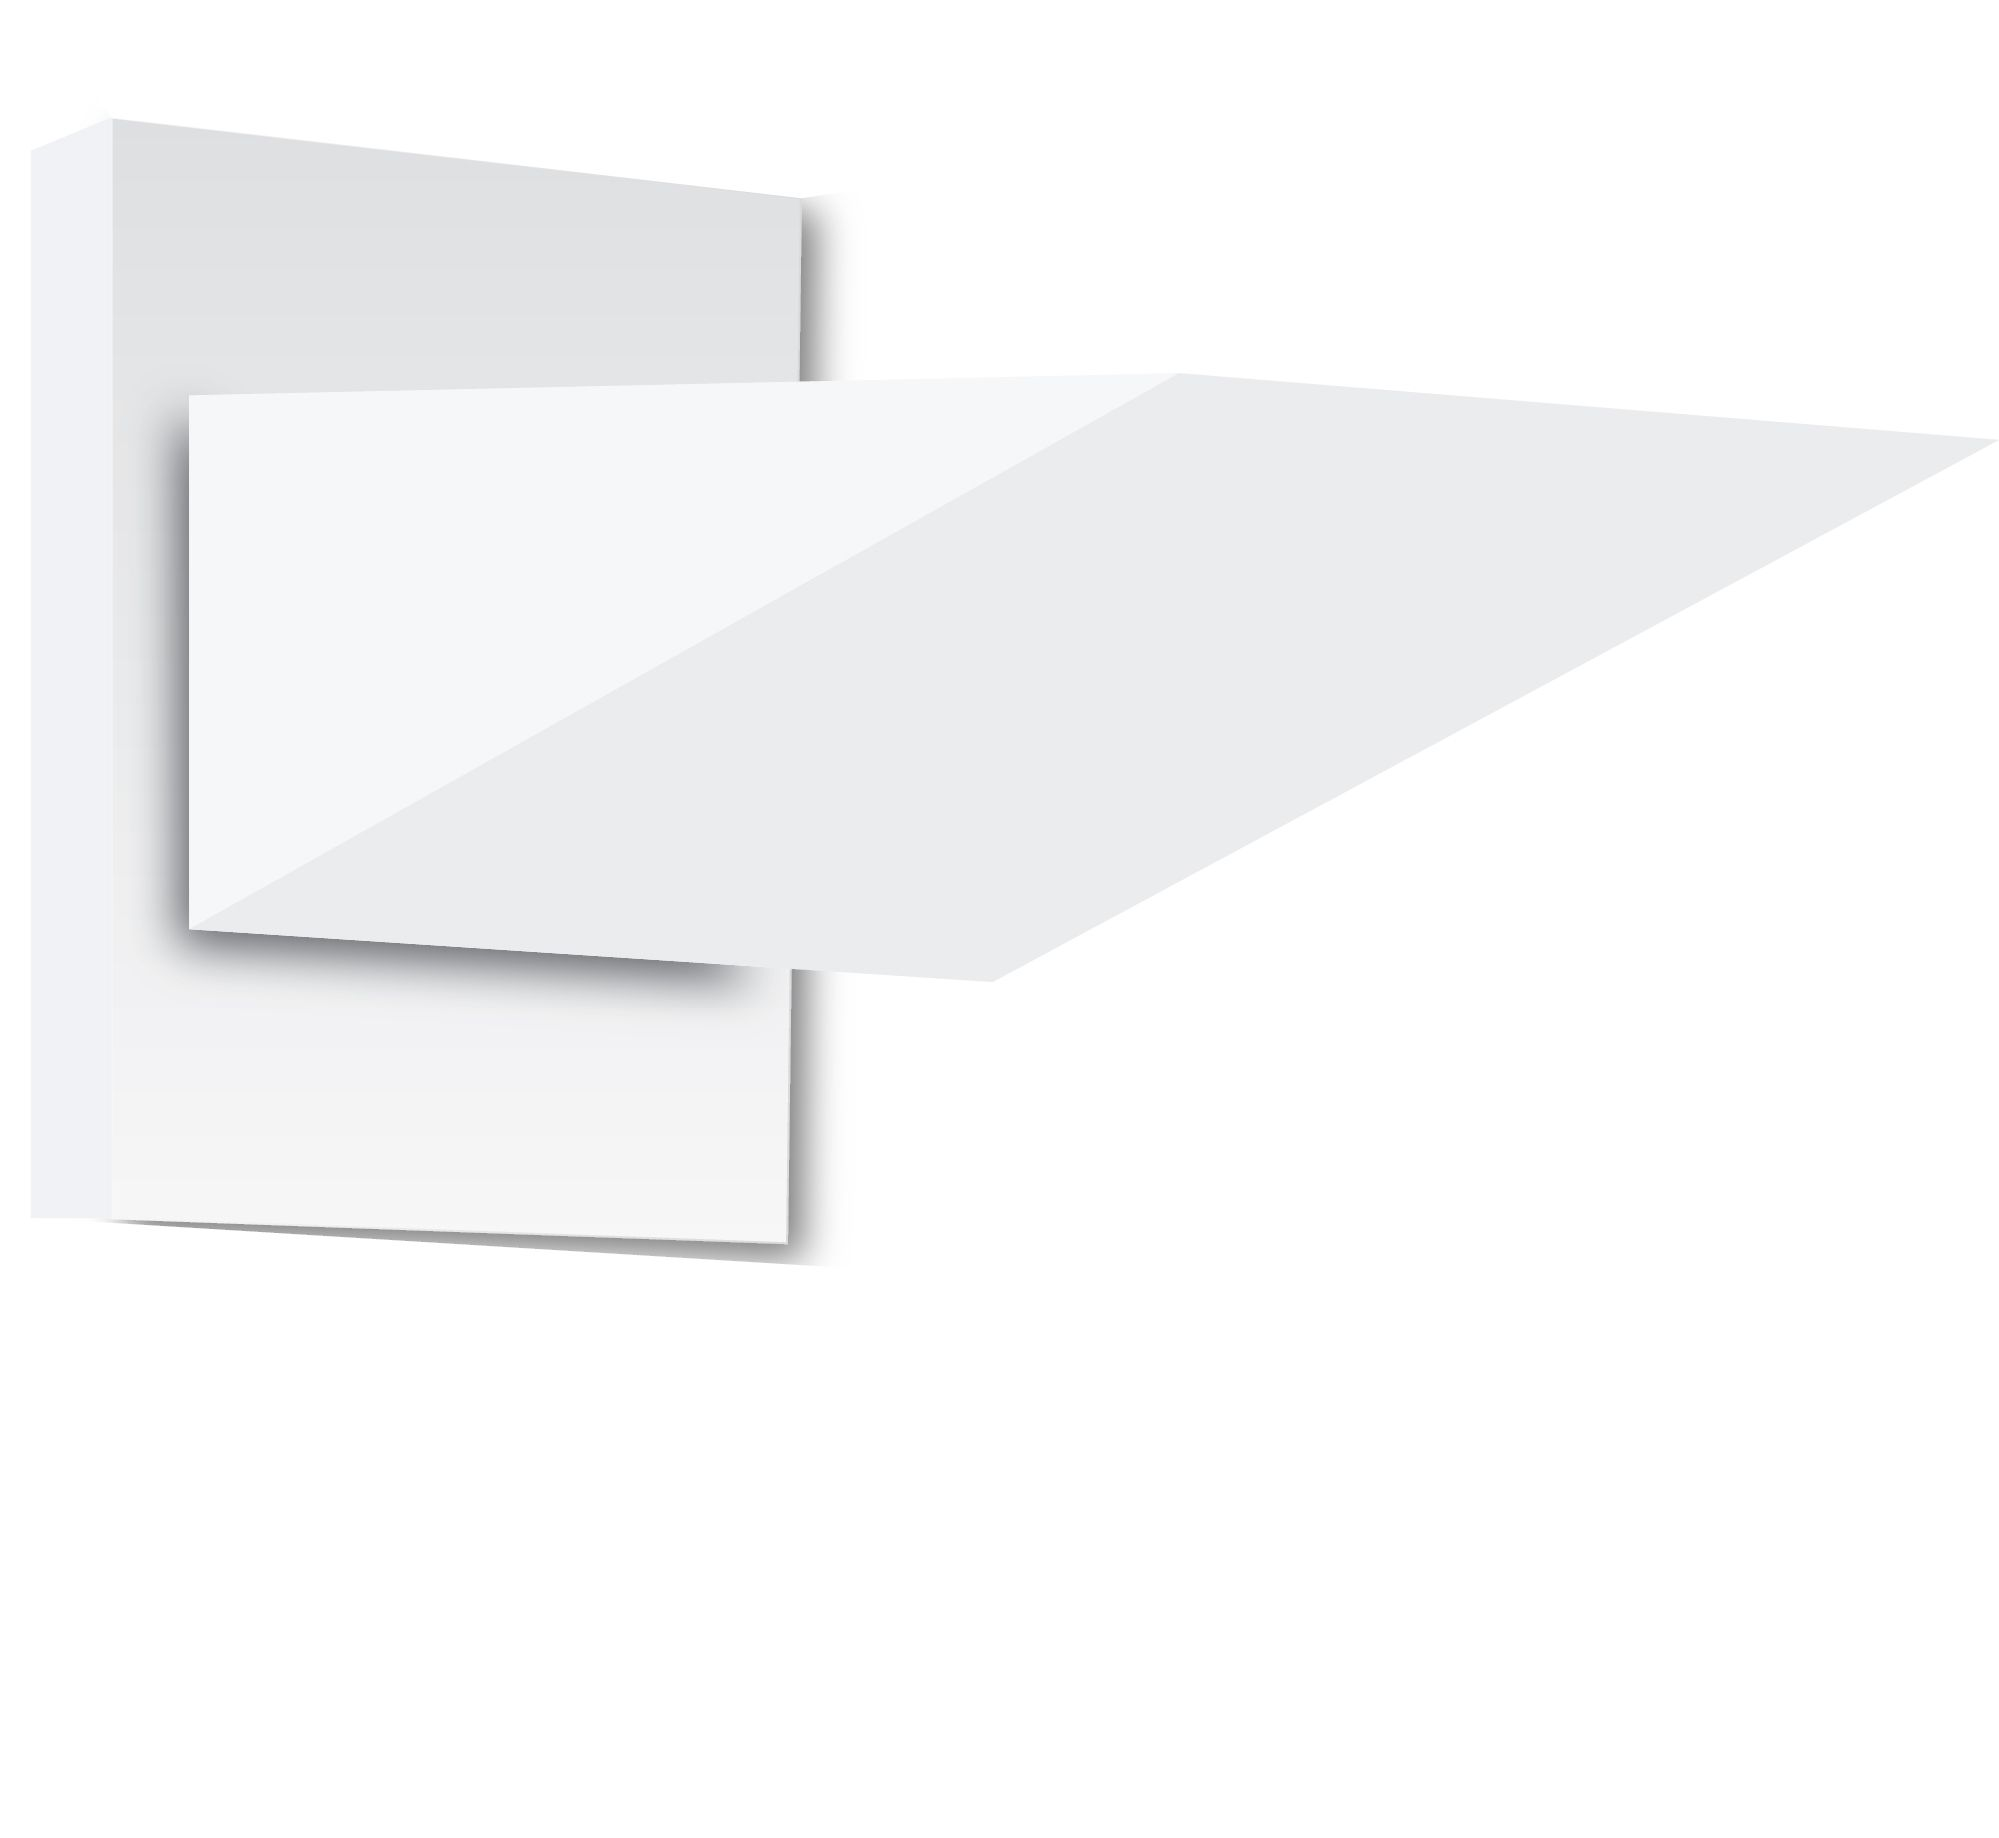 belfer lighting 7215 the wedge light wall mount sconce